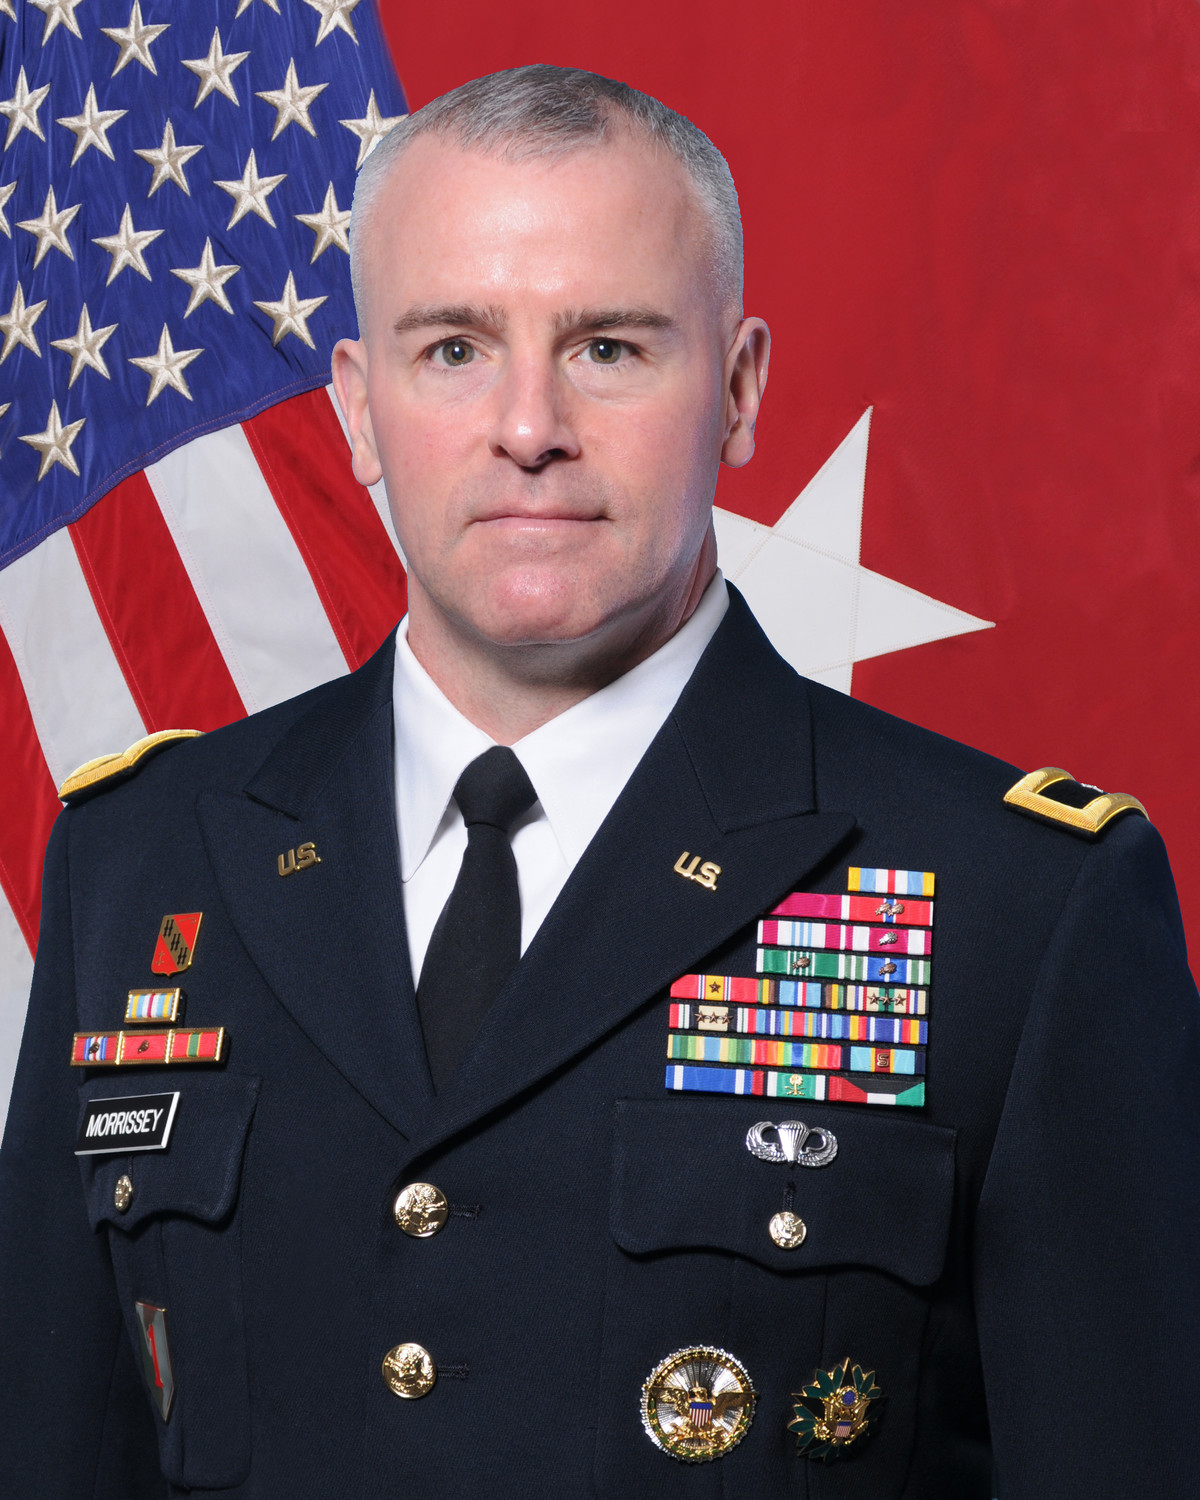 Third Army Promotes New General Friday In Sumter